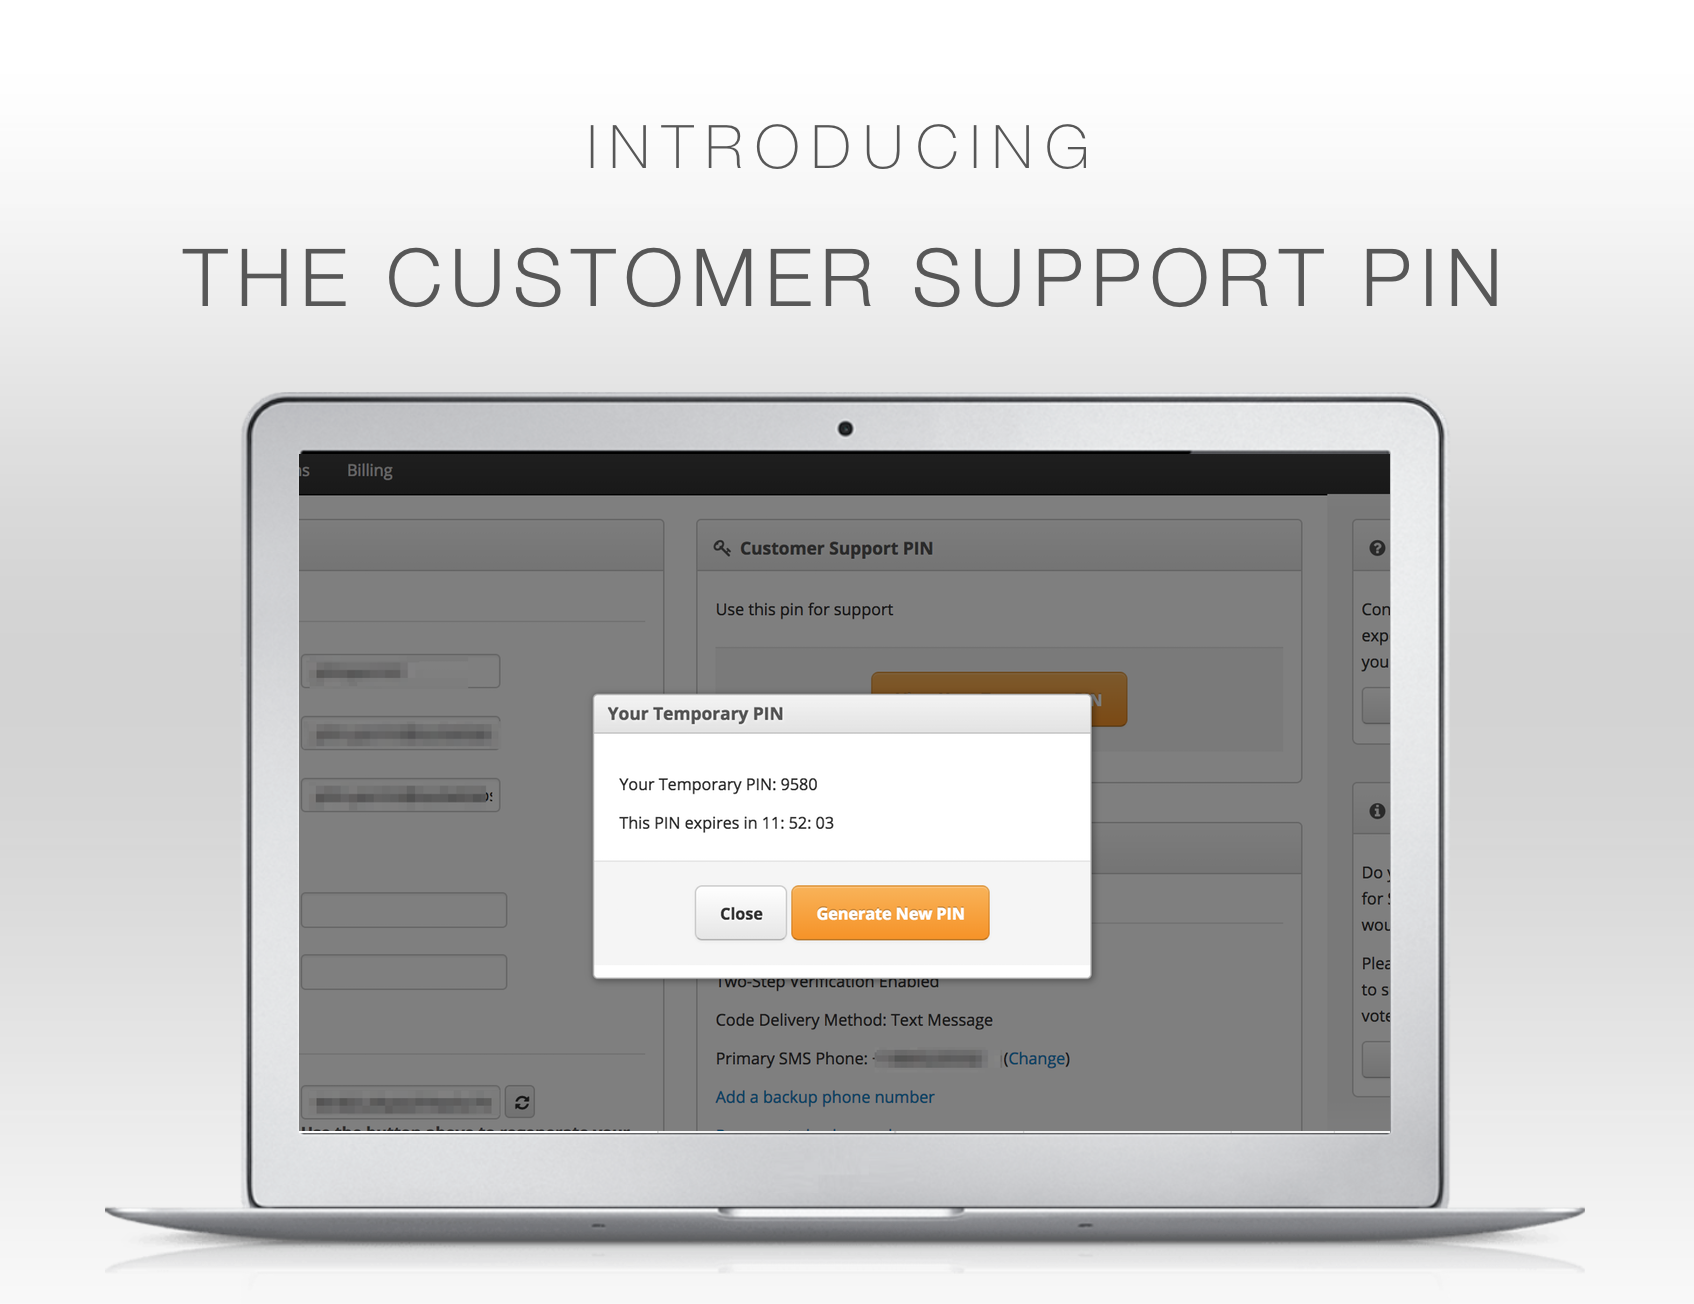 Customer Support PIN